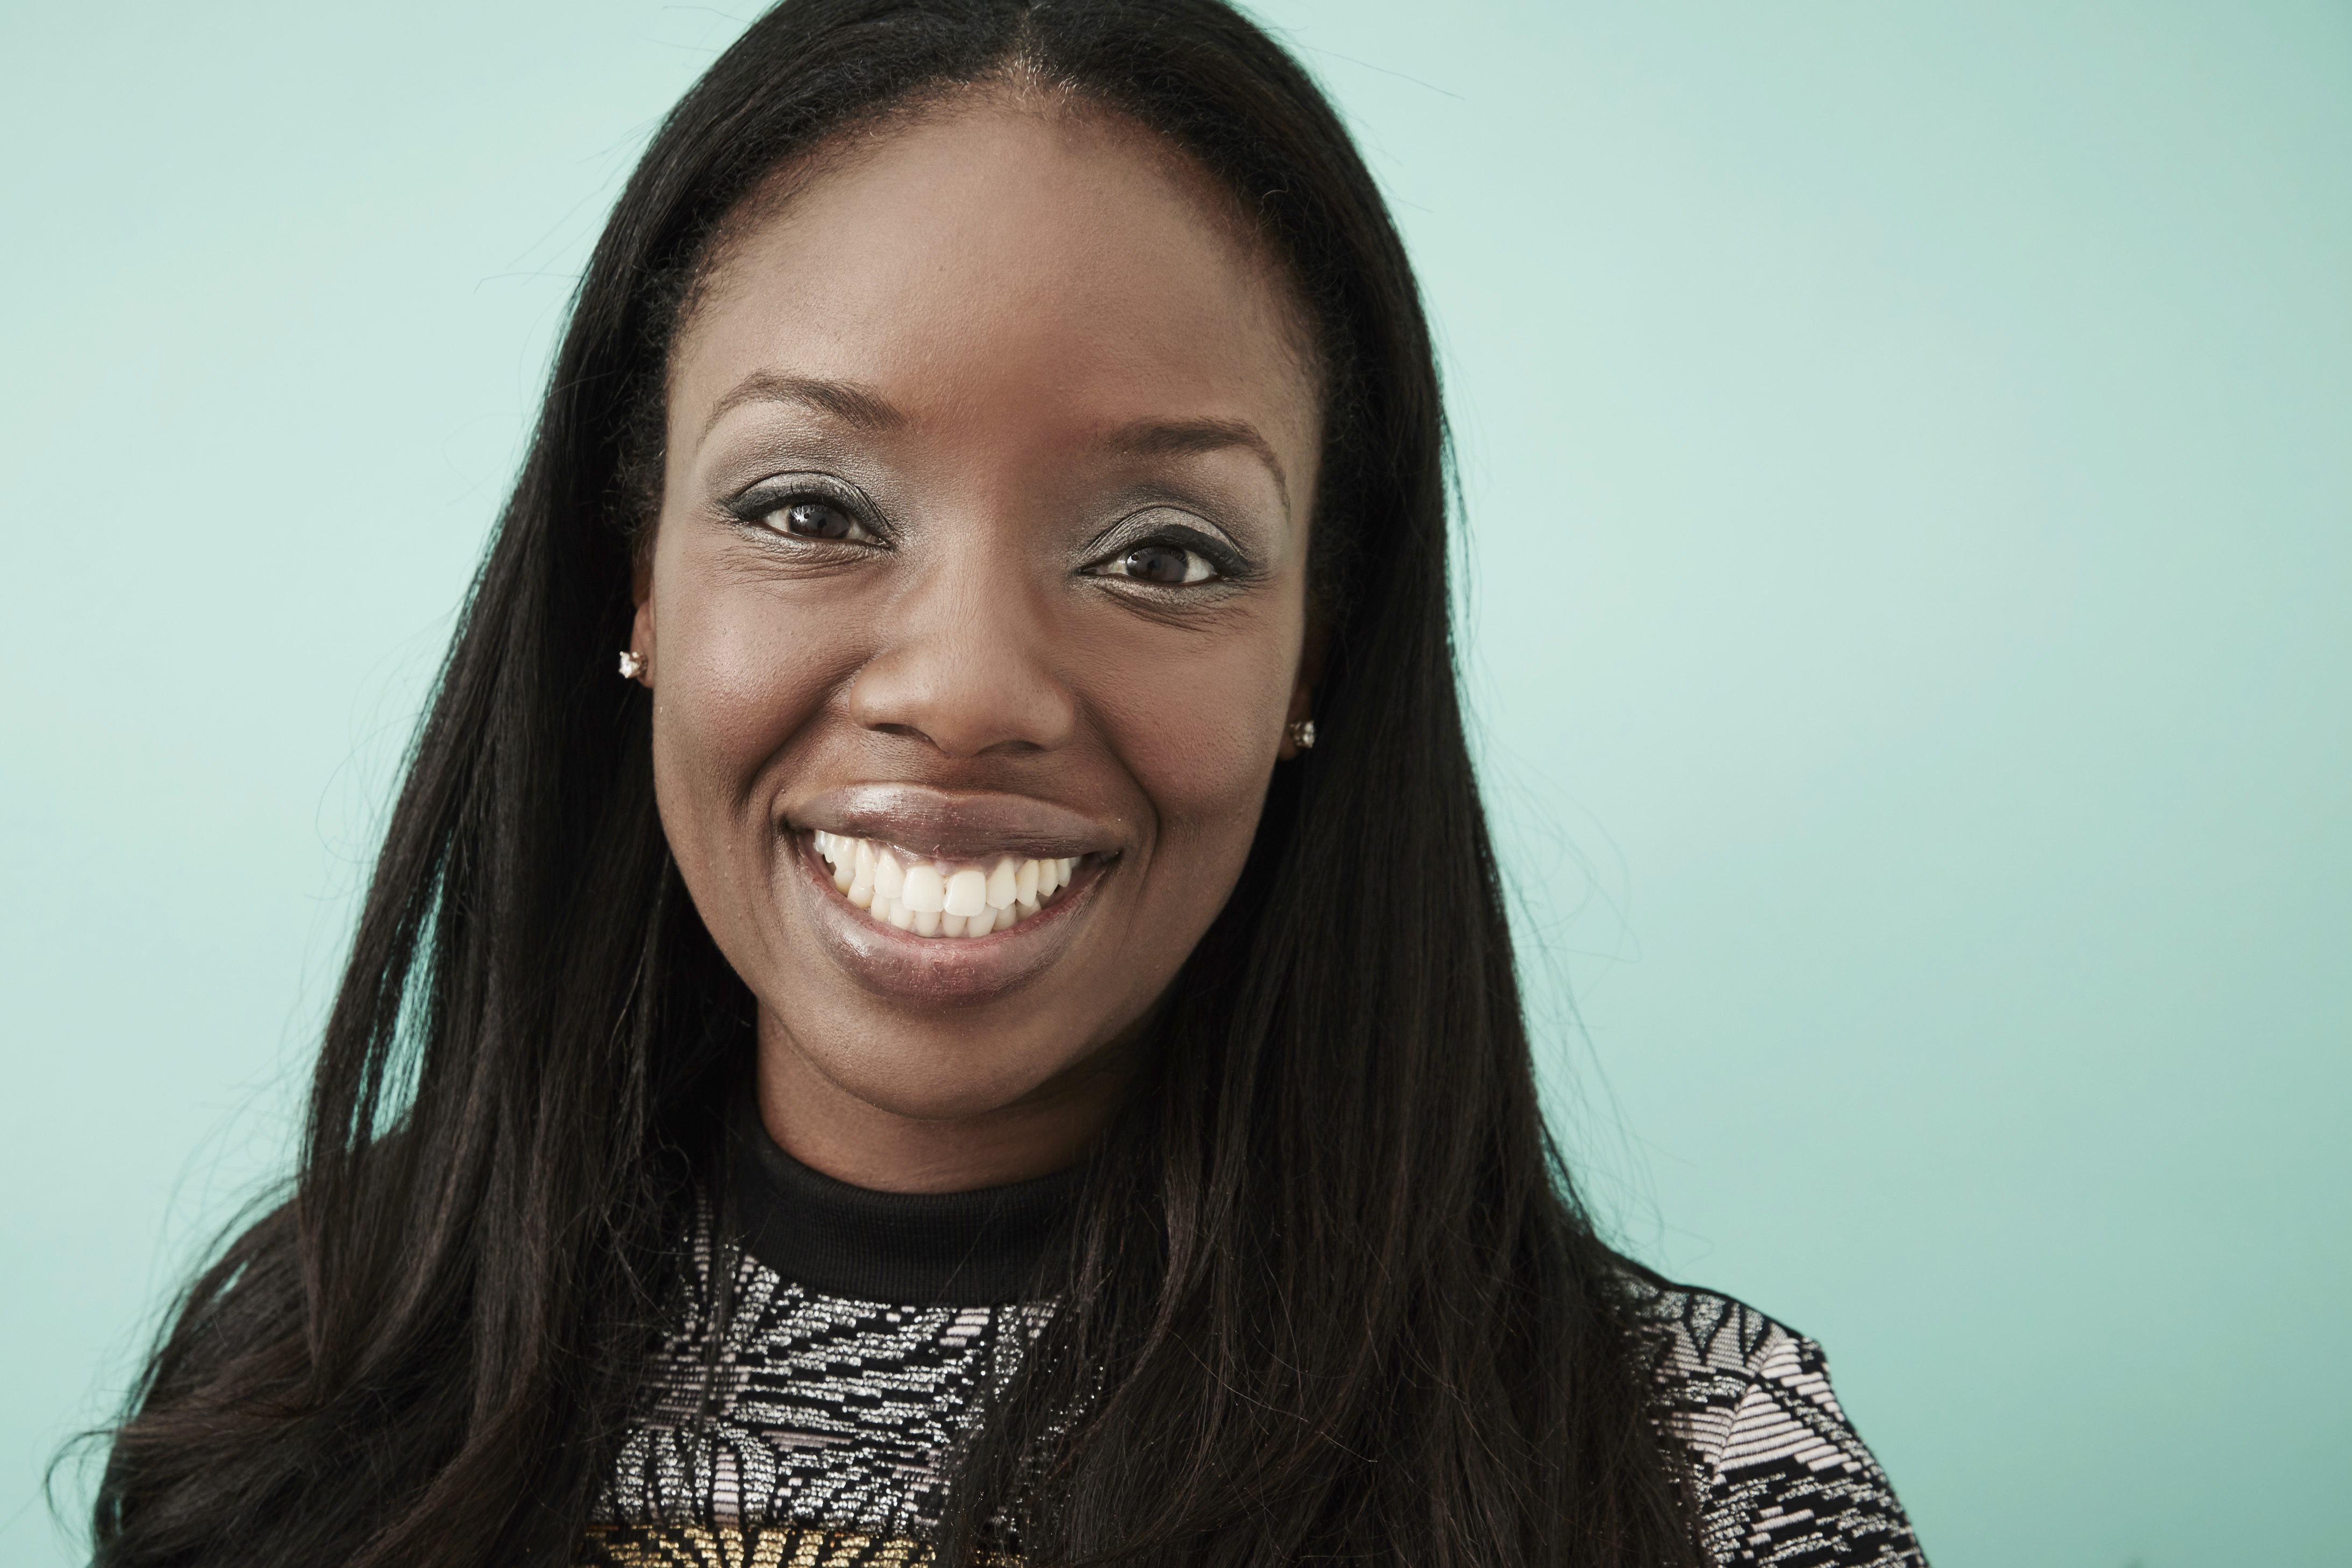 Dr. Nadine Burke Harris isthe founder and CEO of the Center for Youth Wellness in San Francisco